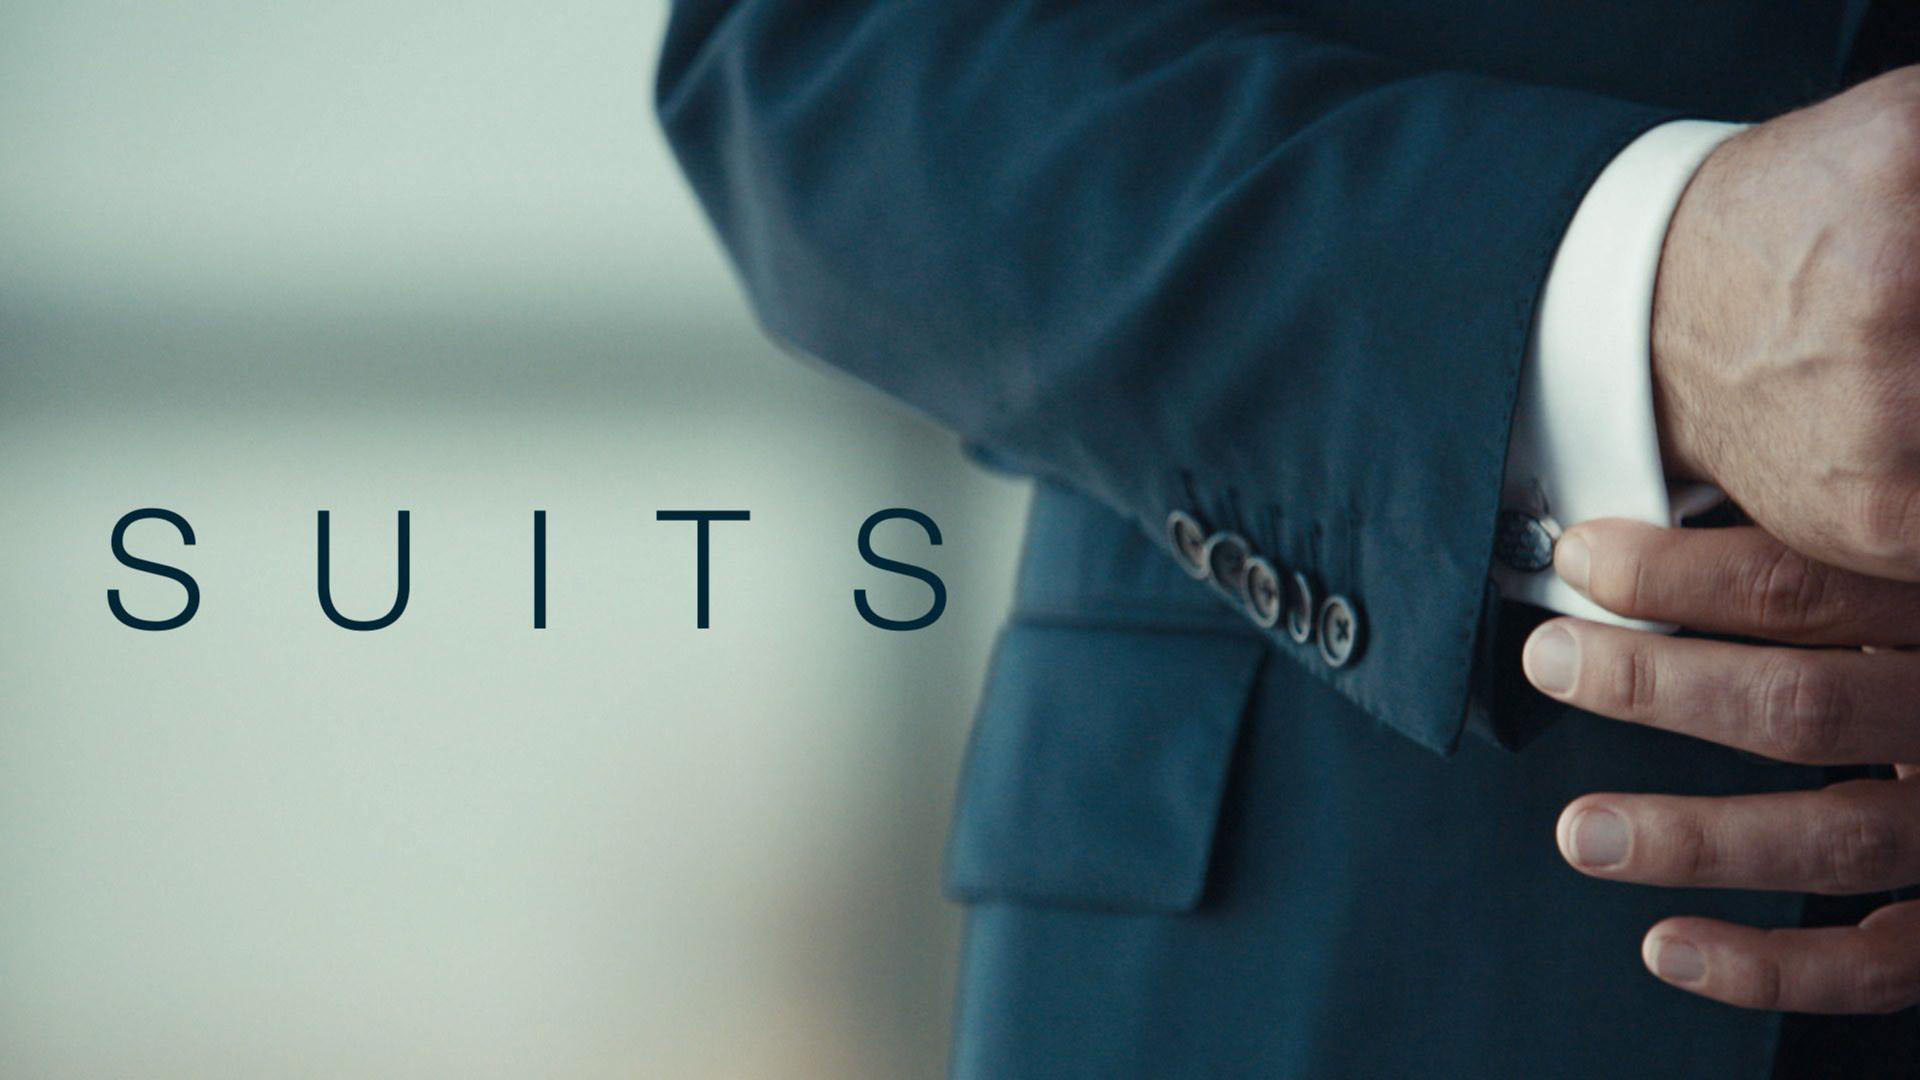 Suits wallpaper 10